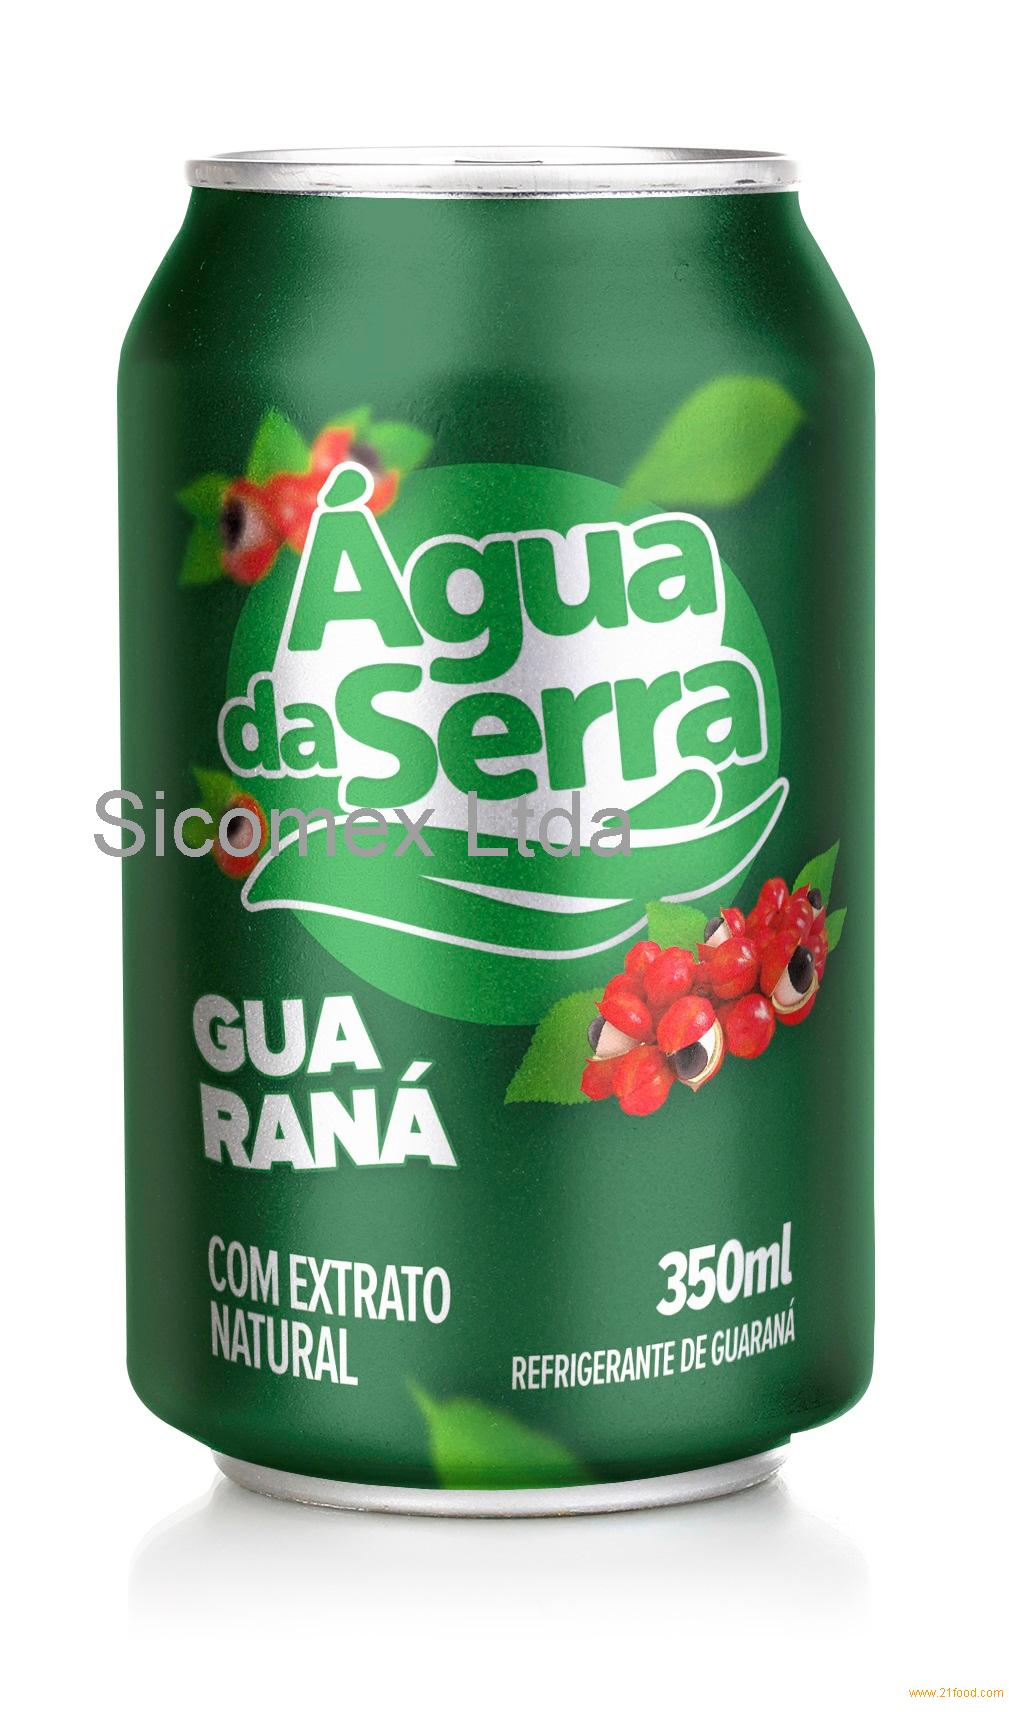 Guaraná soft drink